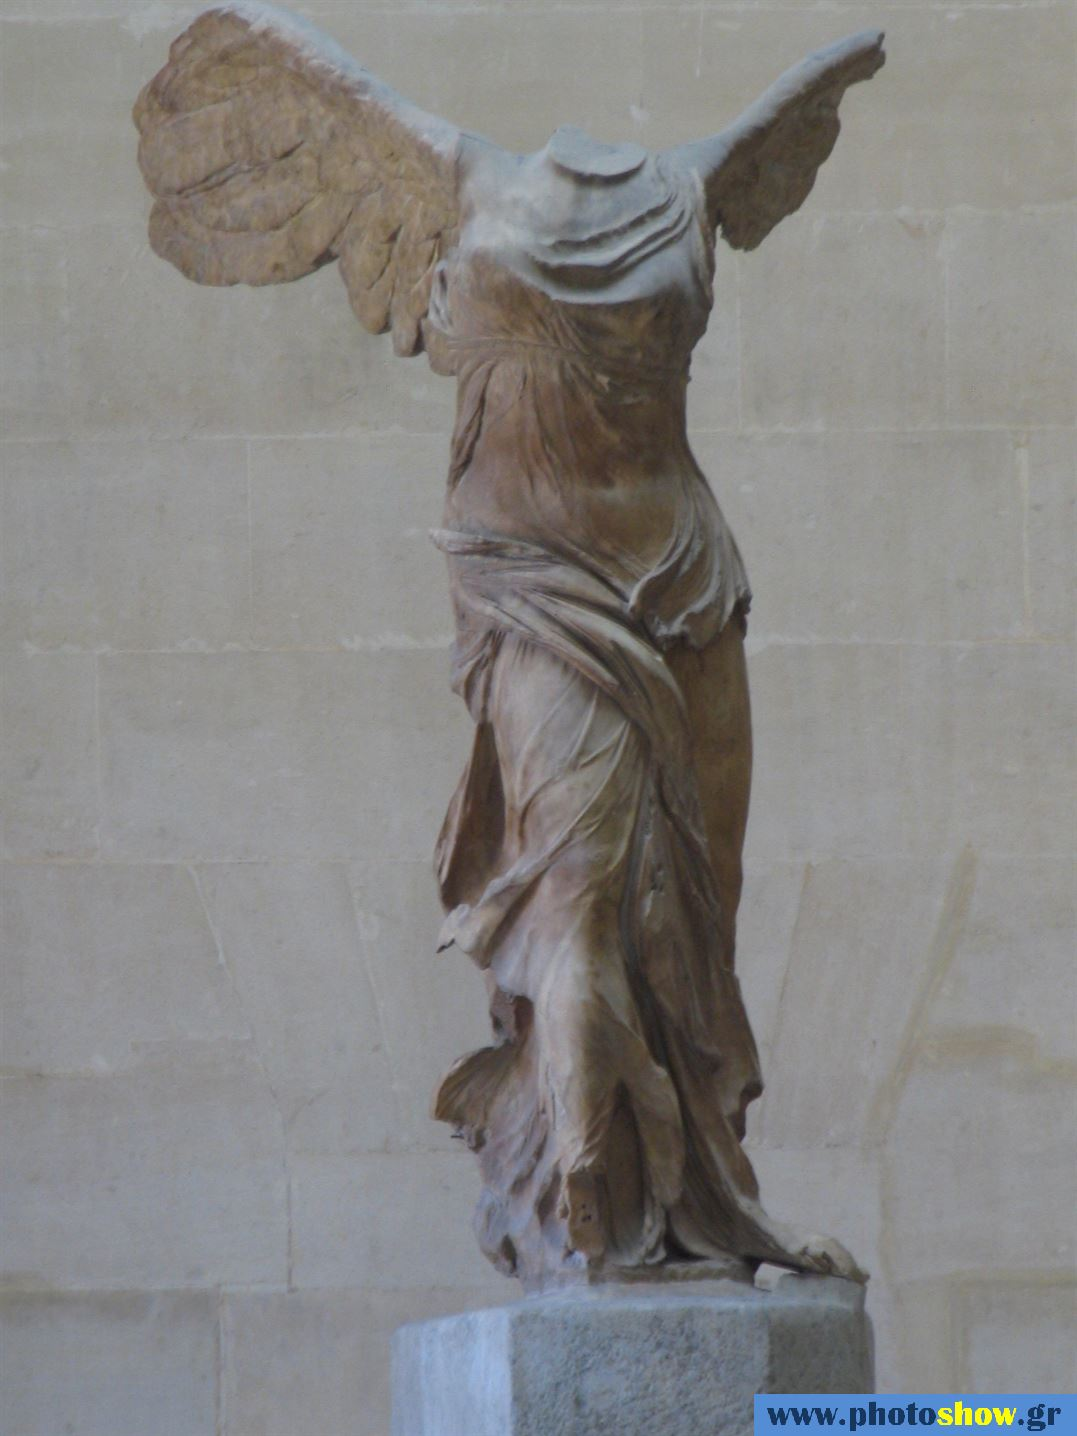 0029064 - SPECIAL PLACES - France, Paris, Louvre Museum.jpg